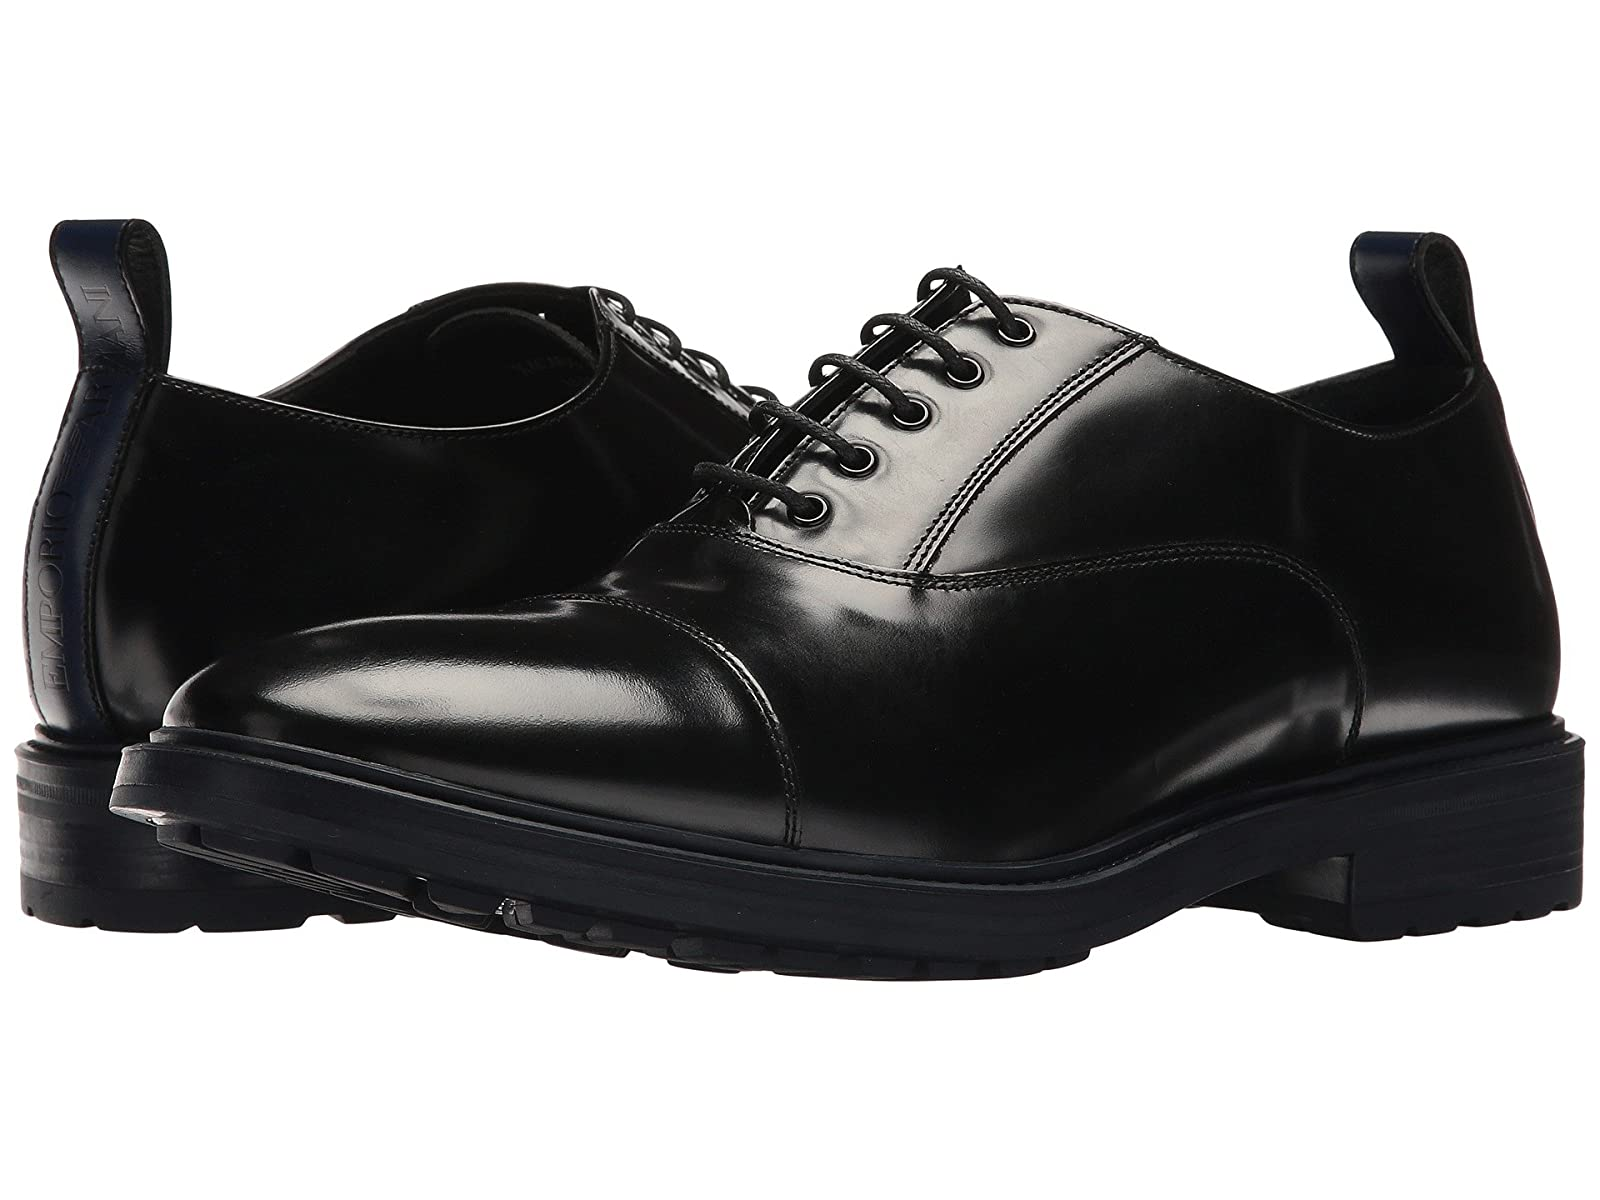 Emporio Armani Cap Toe OxfordCheap and distinctive eye-catching shoes